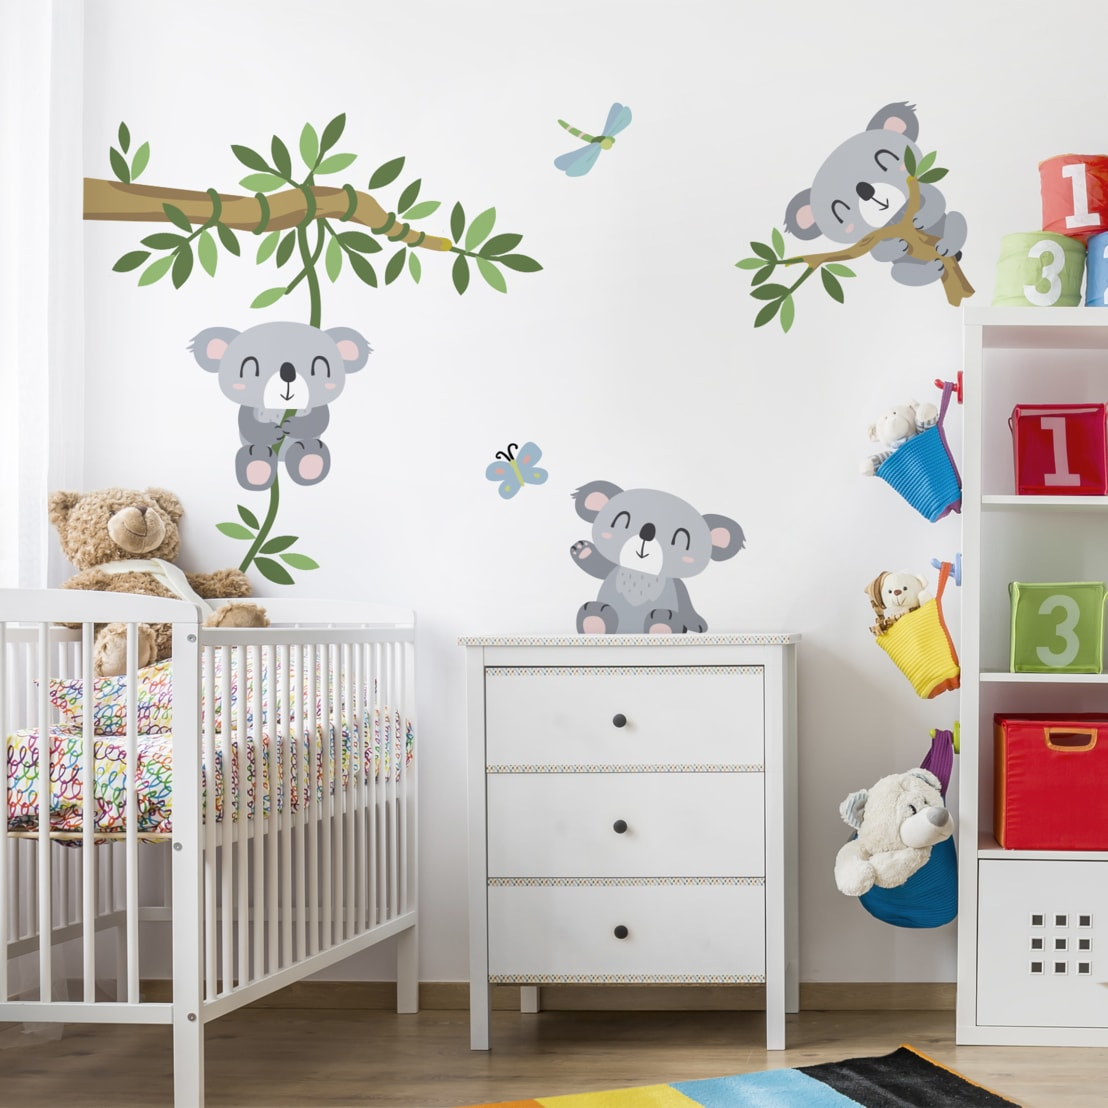 kinderzimmer gestalten einfache ideen f r kinderzimmer makeover von bilderwelten homify. Black Bedroom Furniture Sets. Home Design Ideas